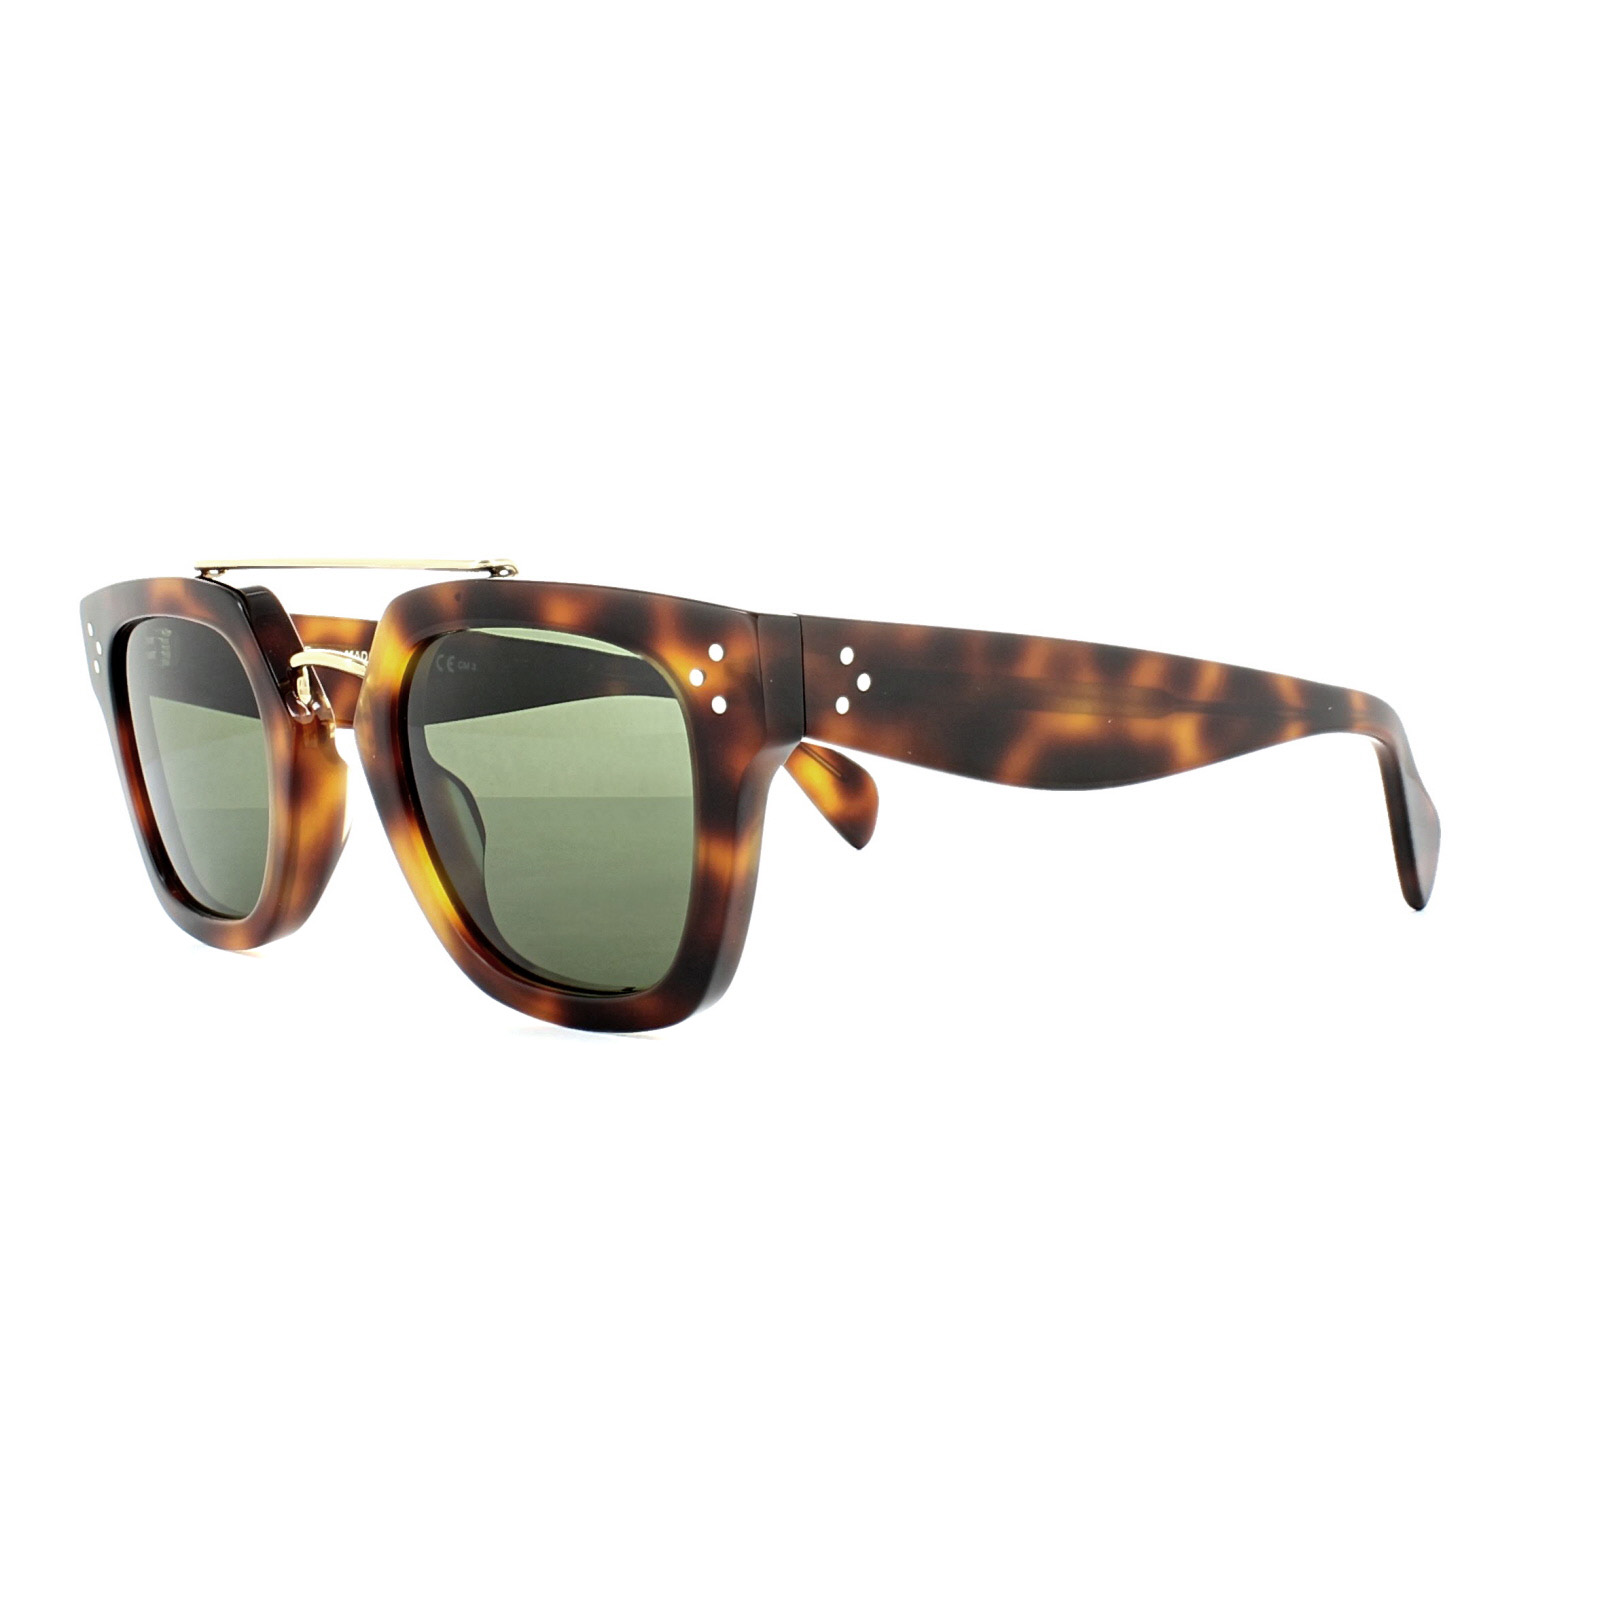 cdb141b8bb47 Sentinel Celine Sunglasses 41077 S Bridge 05L 1E Havana Grey Green